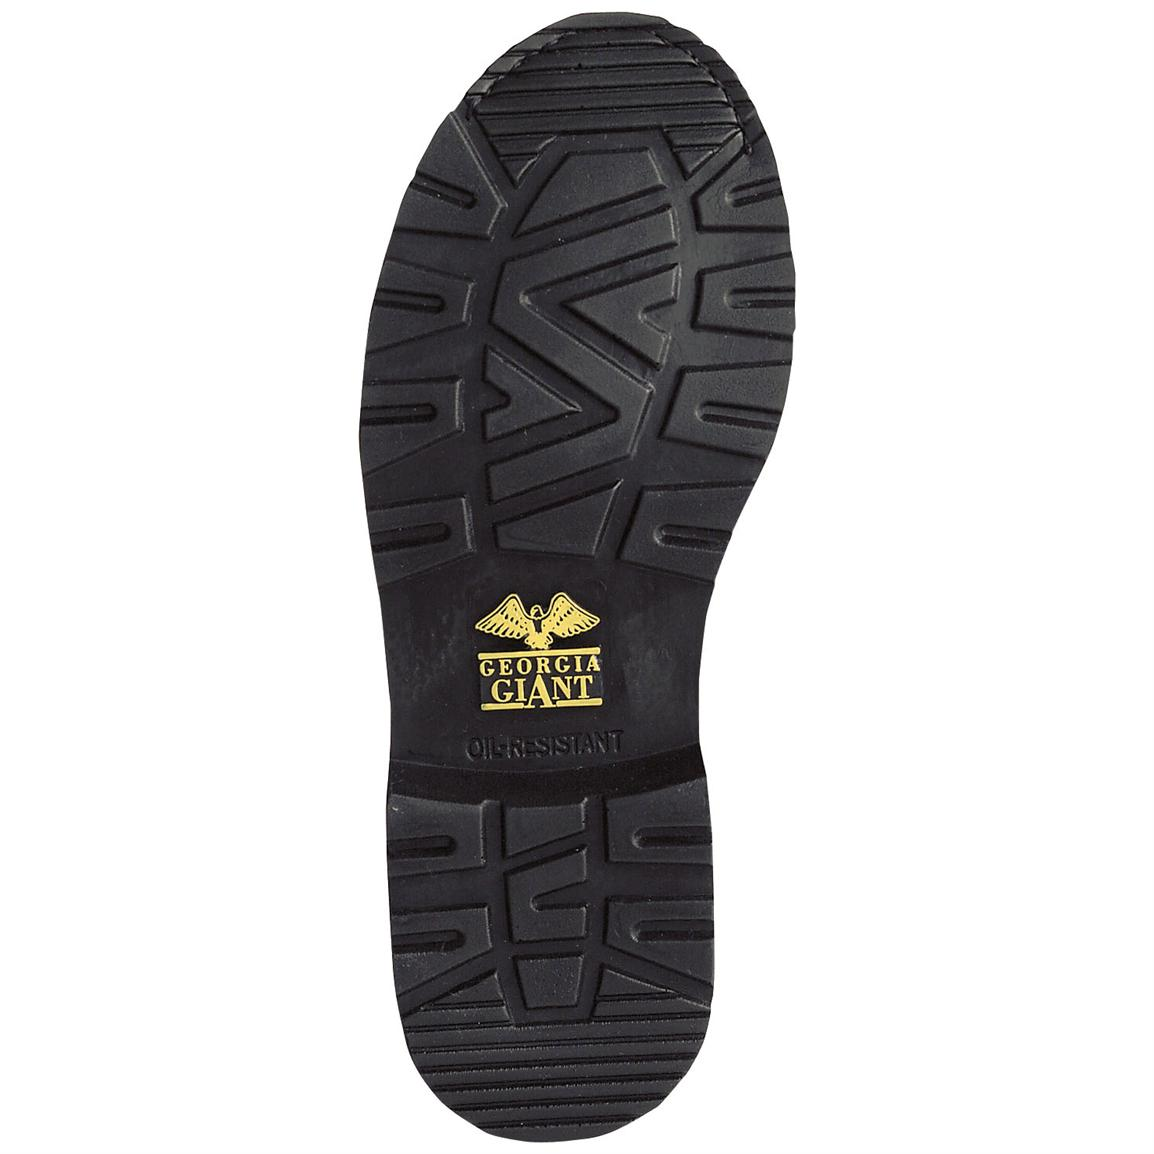 Oil-resistant crepe wedge outsole is lightweight and